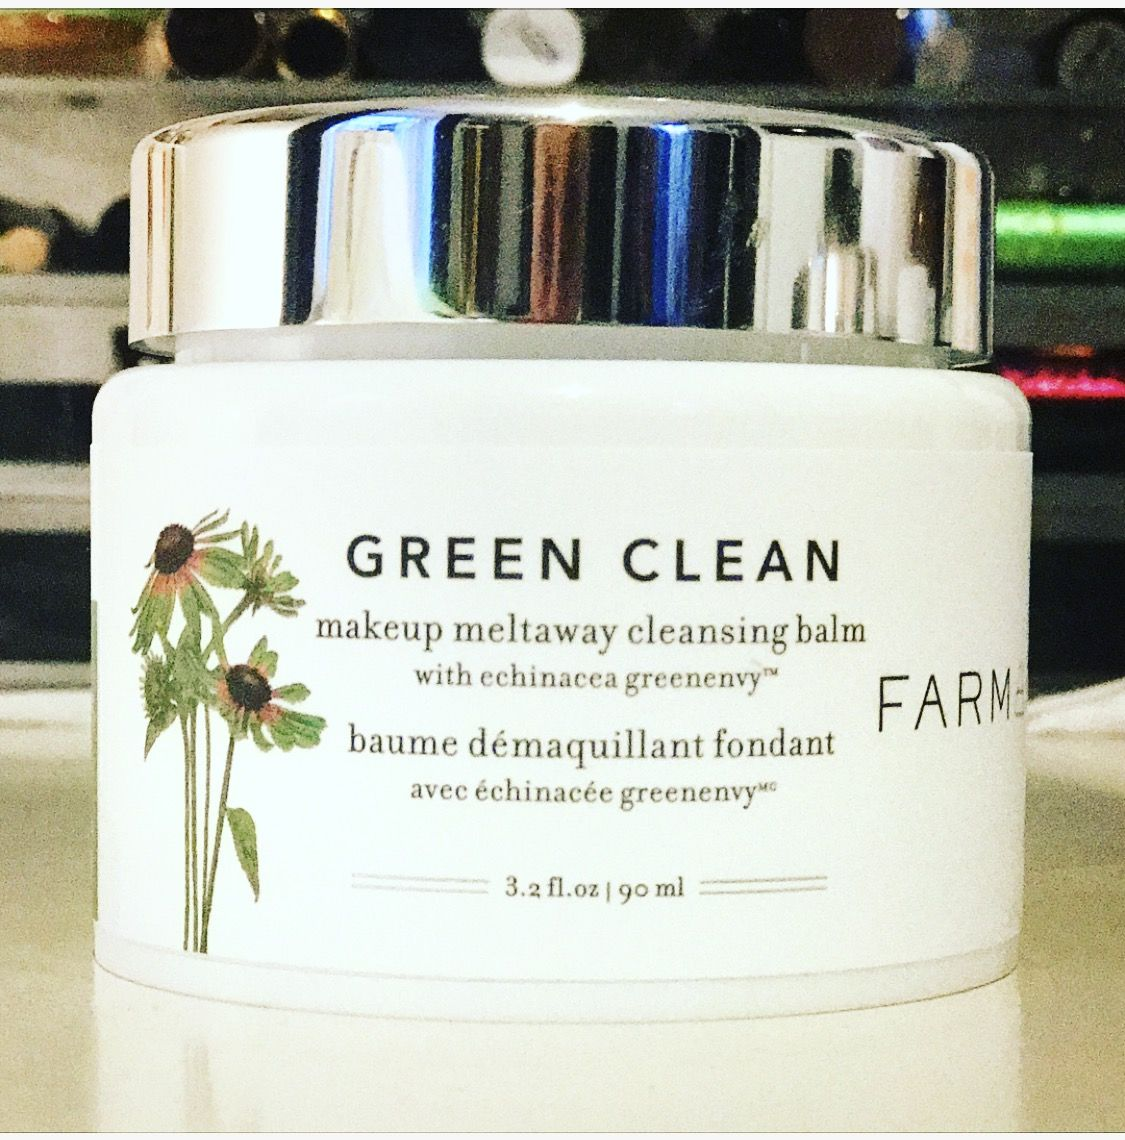 Farmacy Green Clean Makeup Meltaway Cleansing Balm Clean